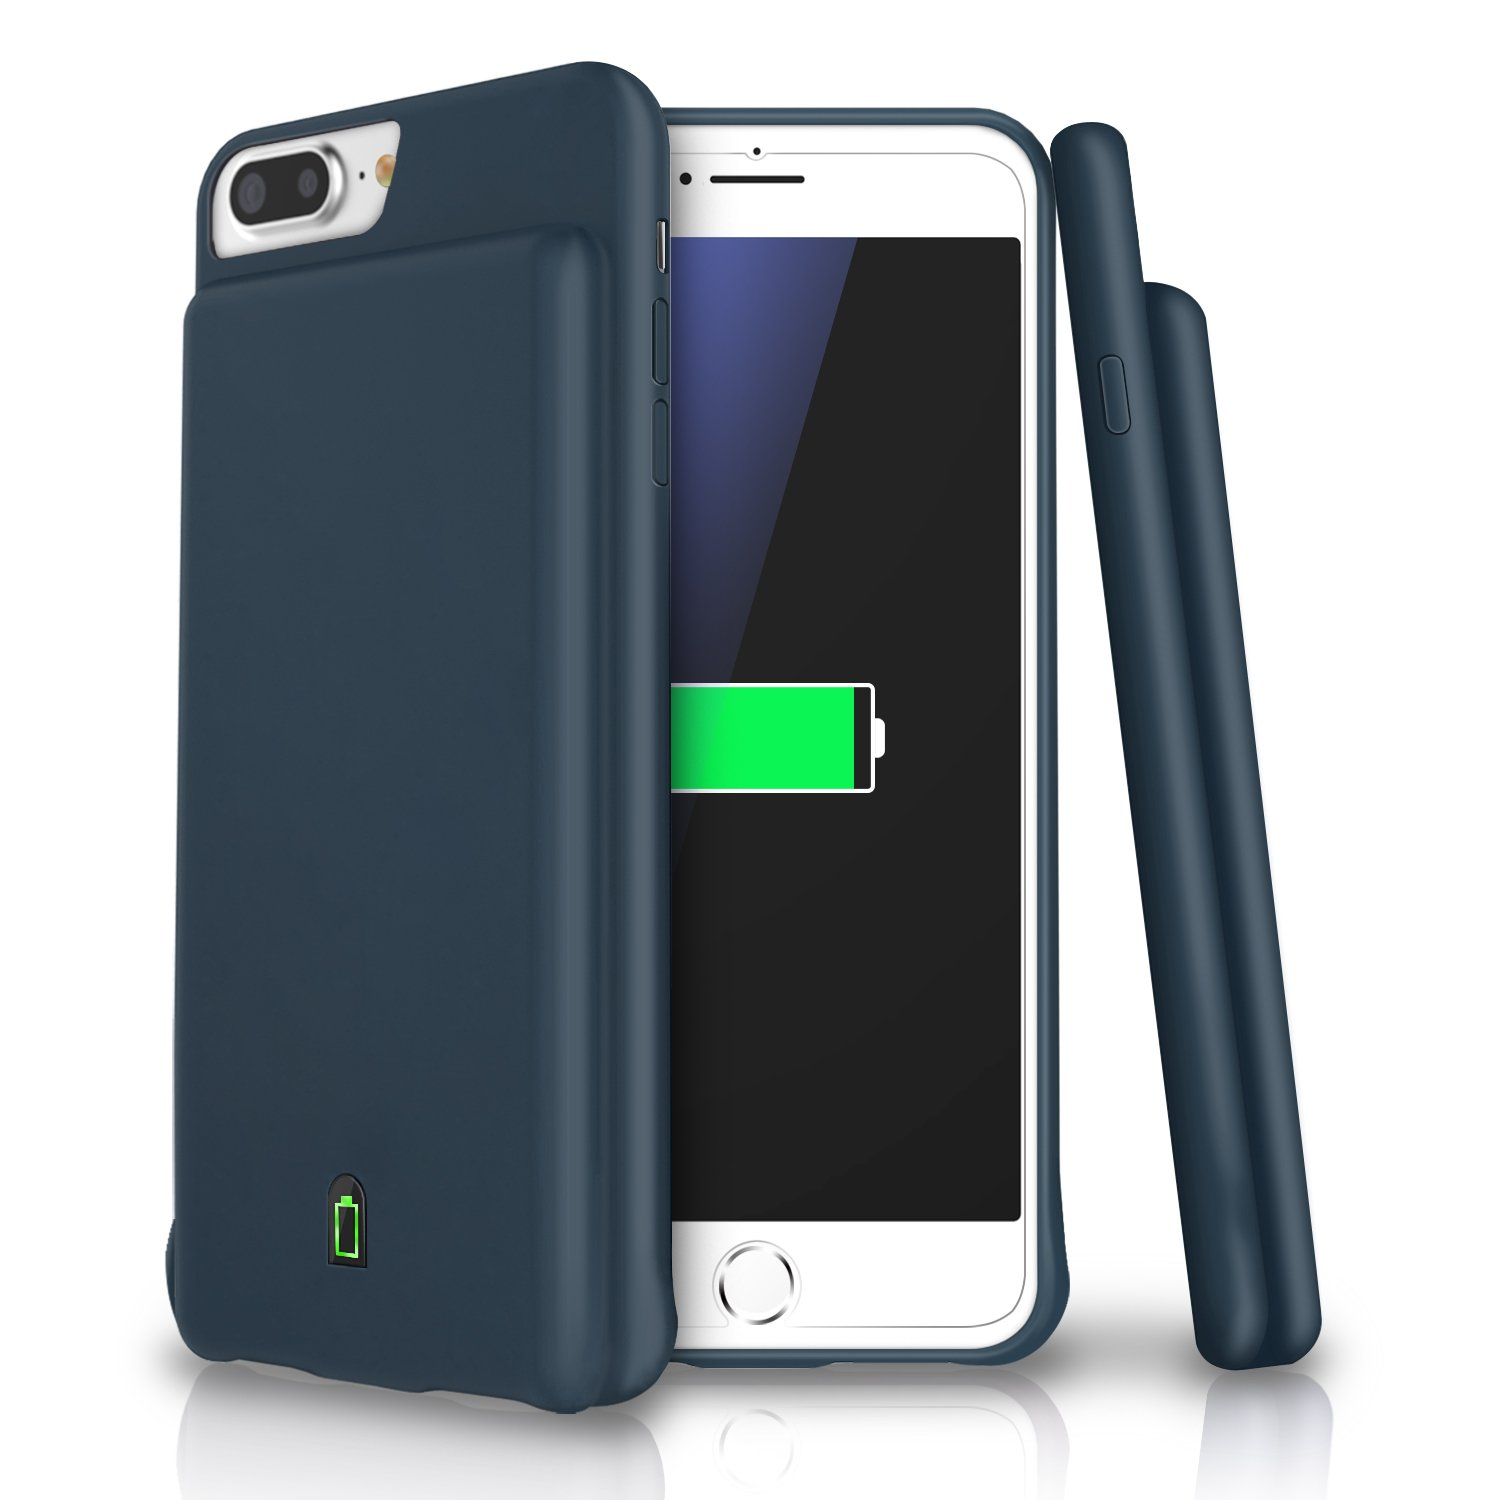 iPhone 8 Plus / 7 Plus / 6s Plus / 6 Plus Battery Case, LoHi 7000mAh Capacity Support Headphones Ultra Slim Extended Battery Rechargeable Protective Portable Charger 5.5 Inch Navy Blue IP7-Battery-Blue